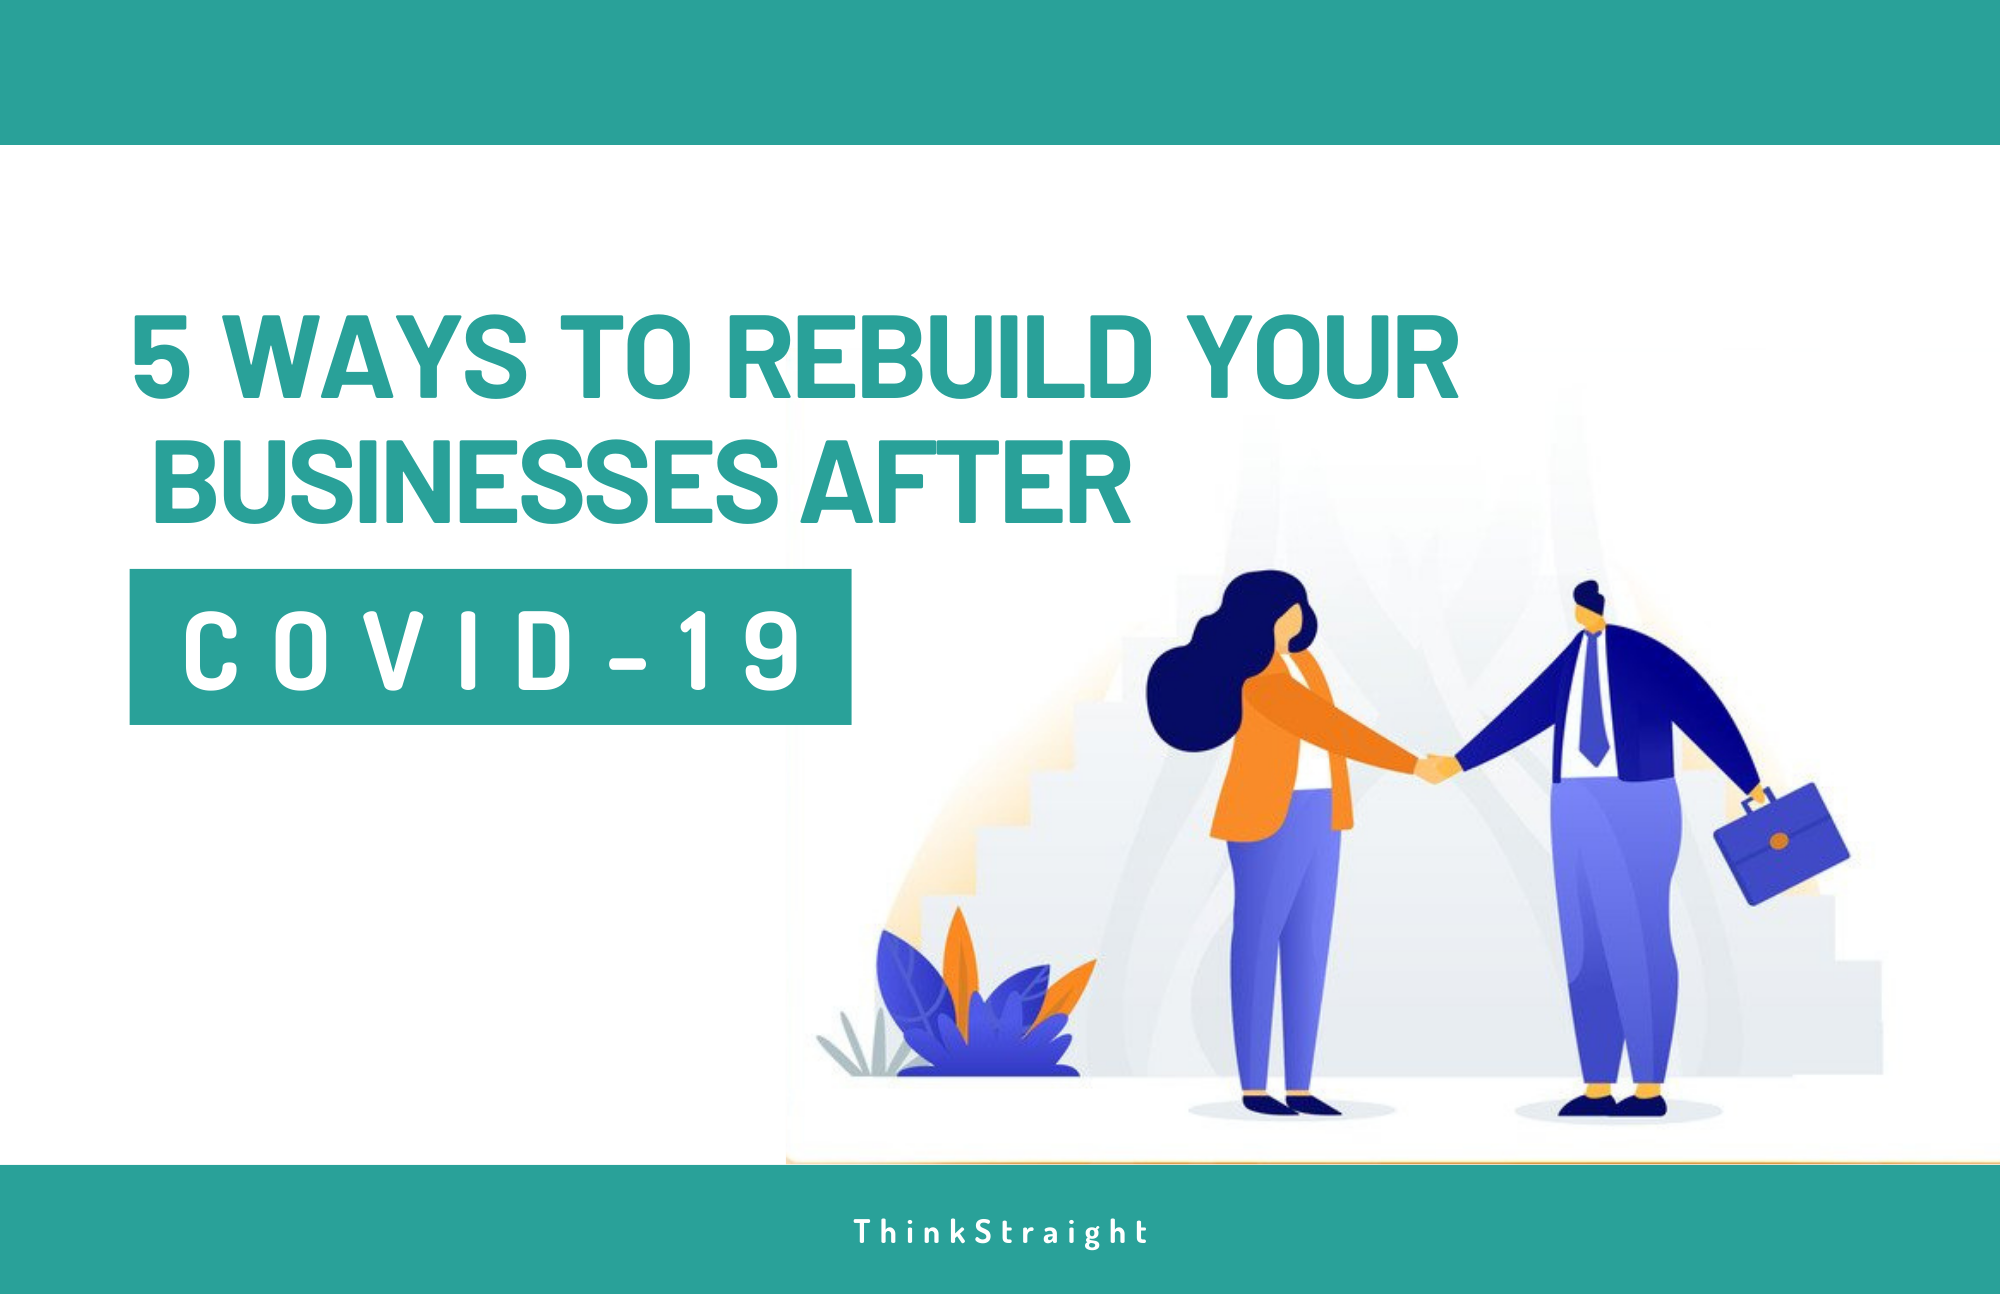 5 Ways To Rebuild Your Businesses After COVID-19